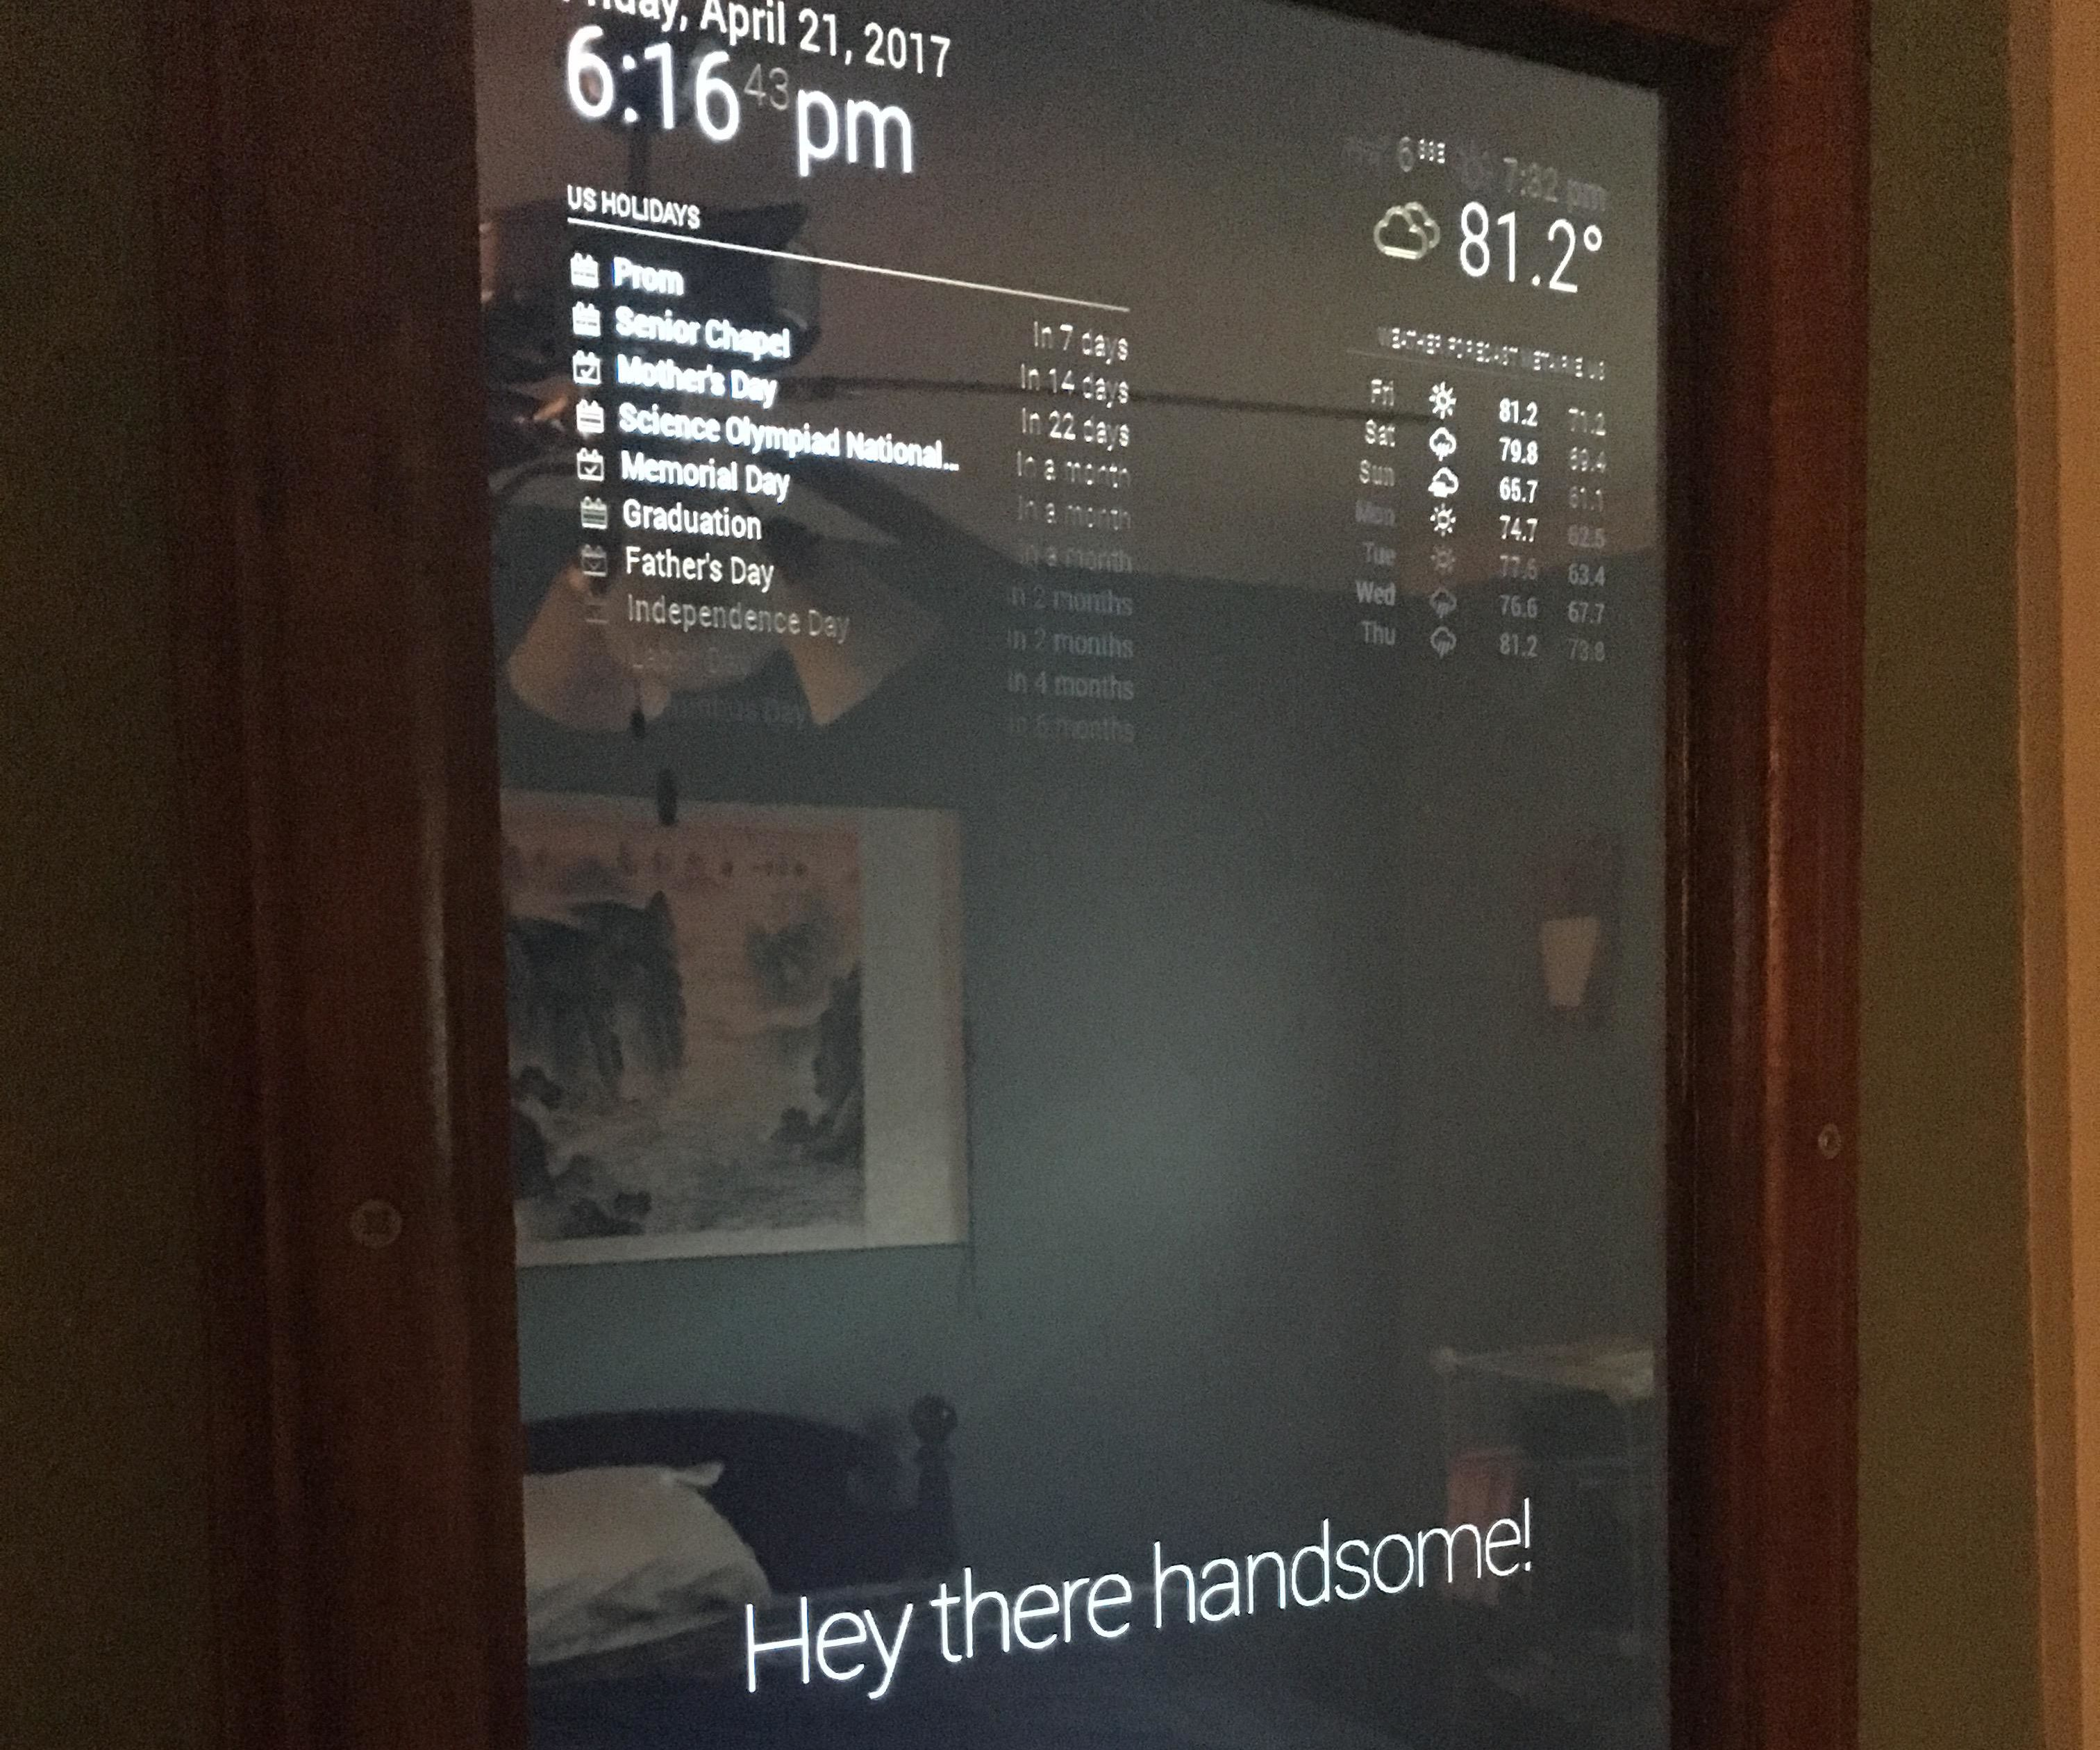 Smart Mirror -Raspberry Pi 3 : 5 Steps (with Pictures) - Instructables